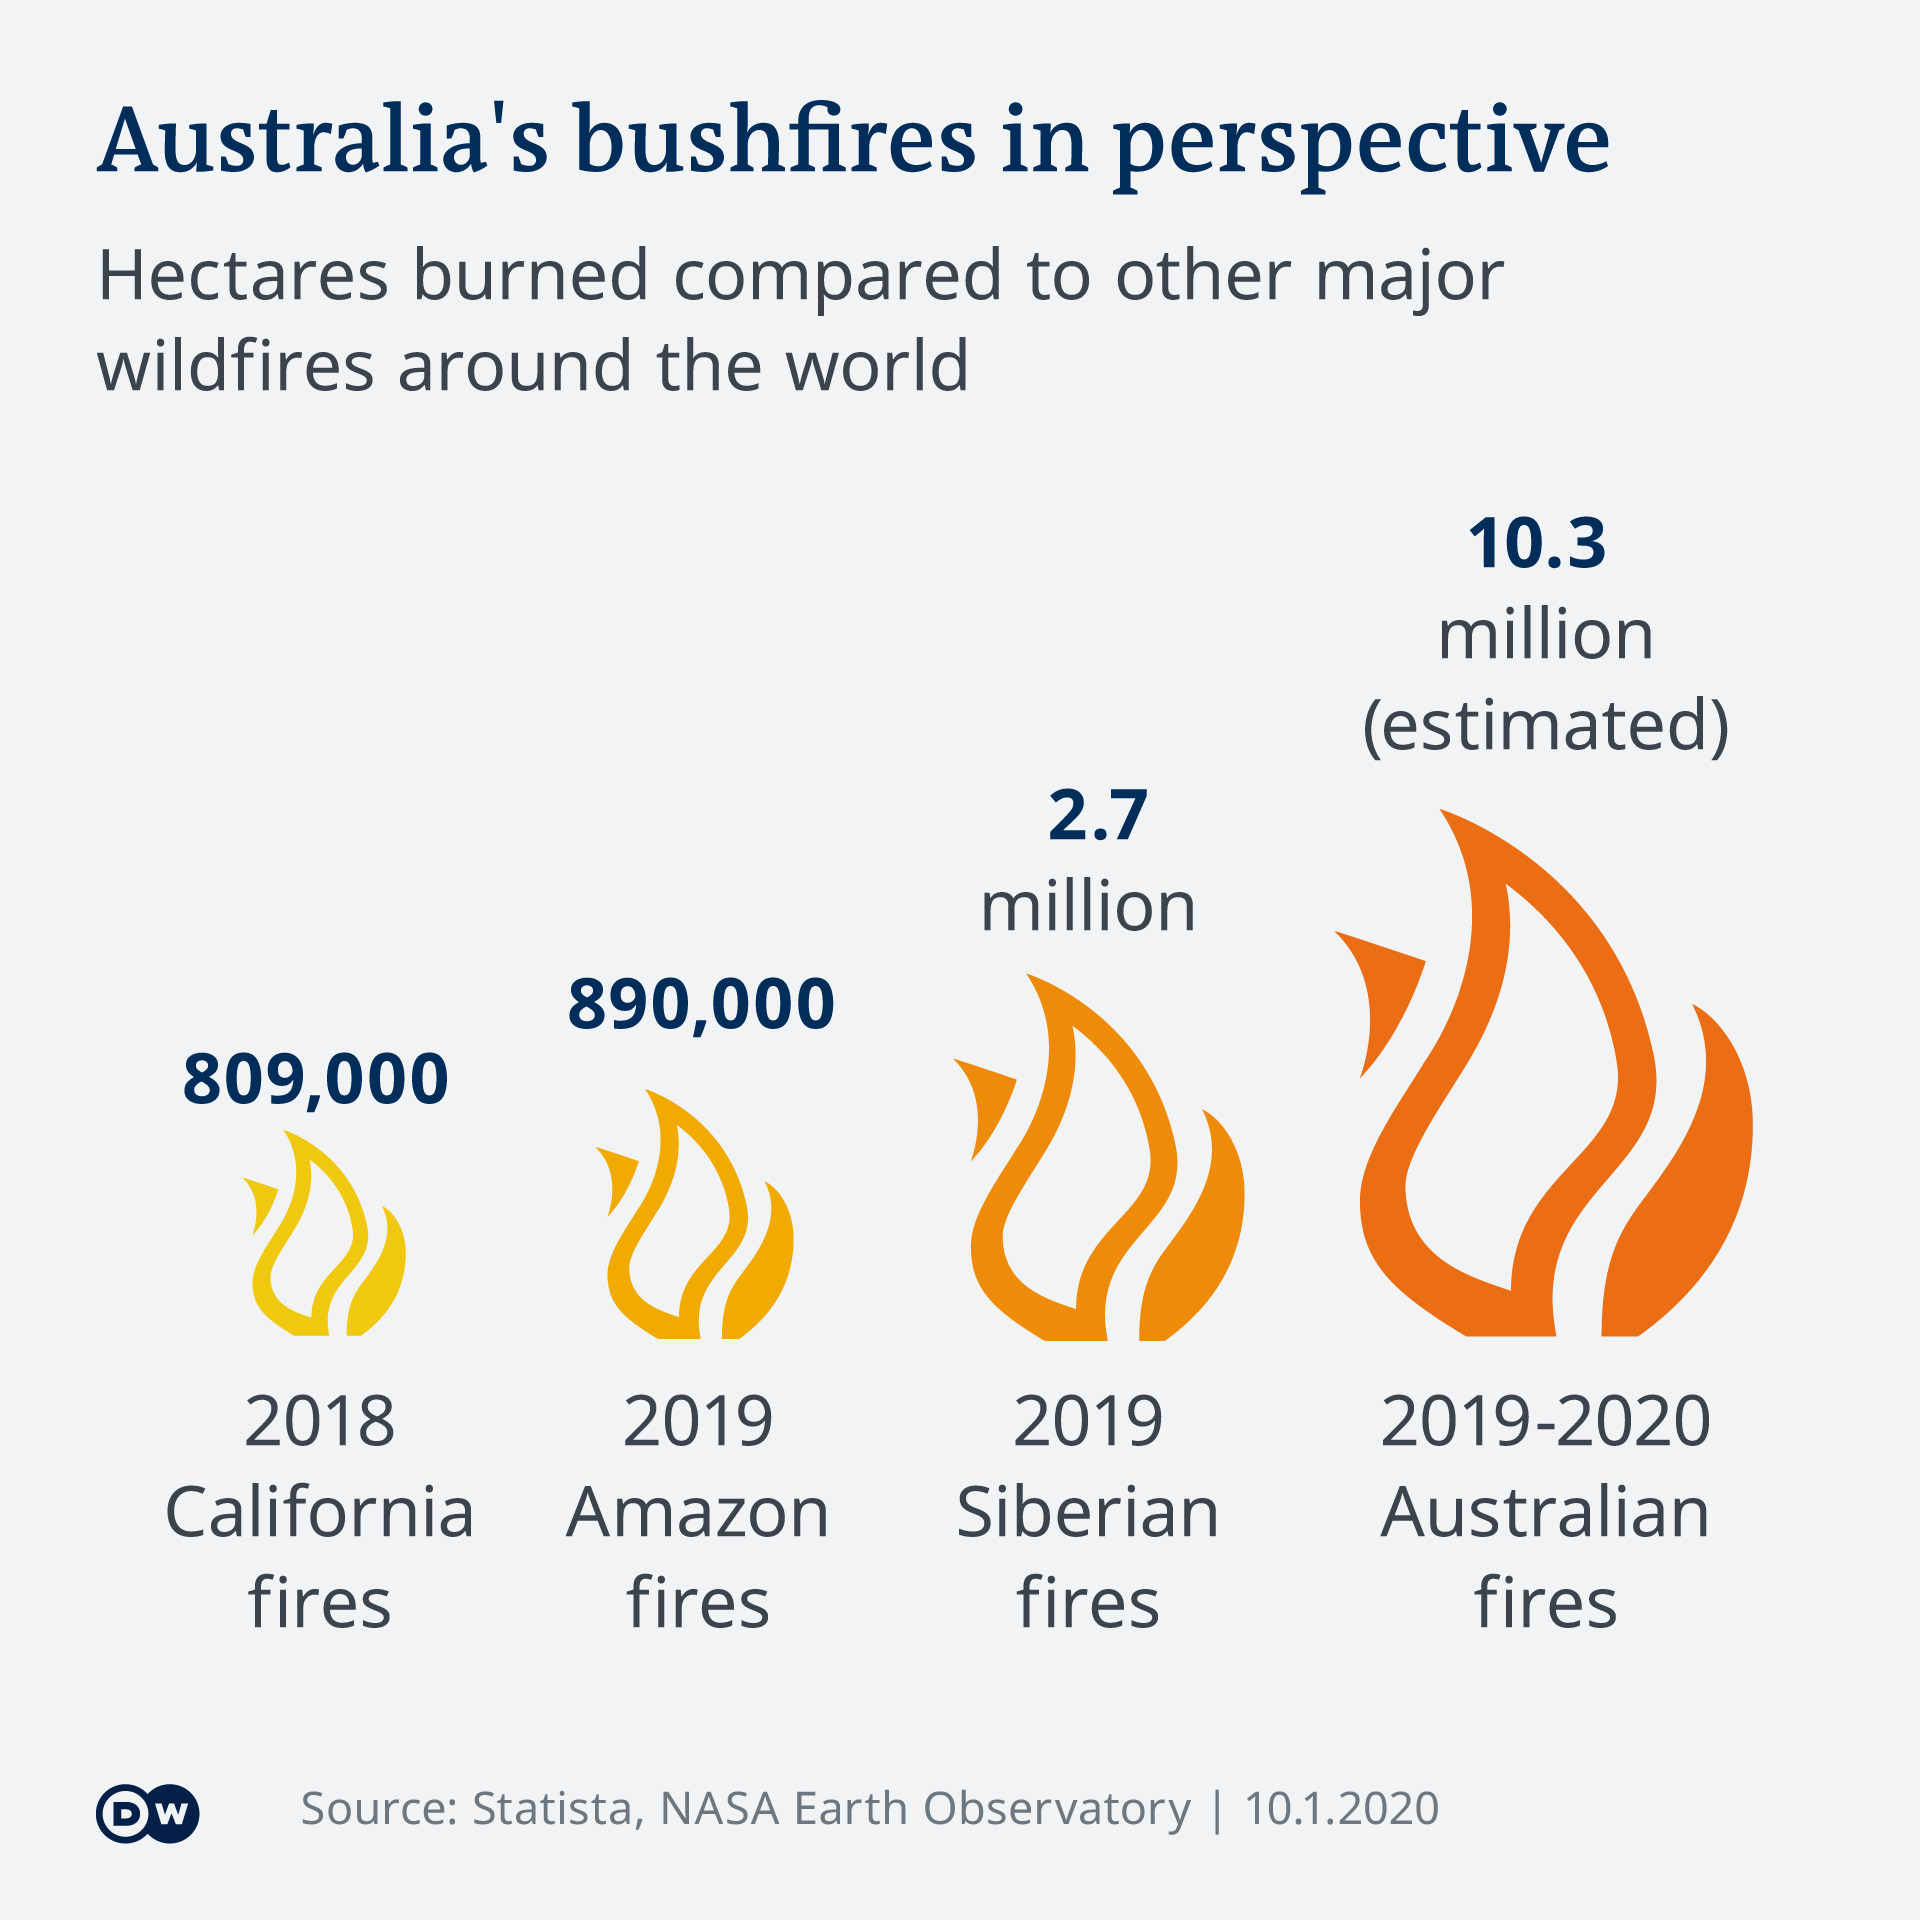 Infographic: Australia's bushfires comparison by area